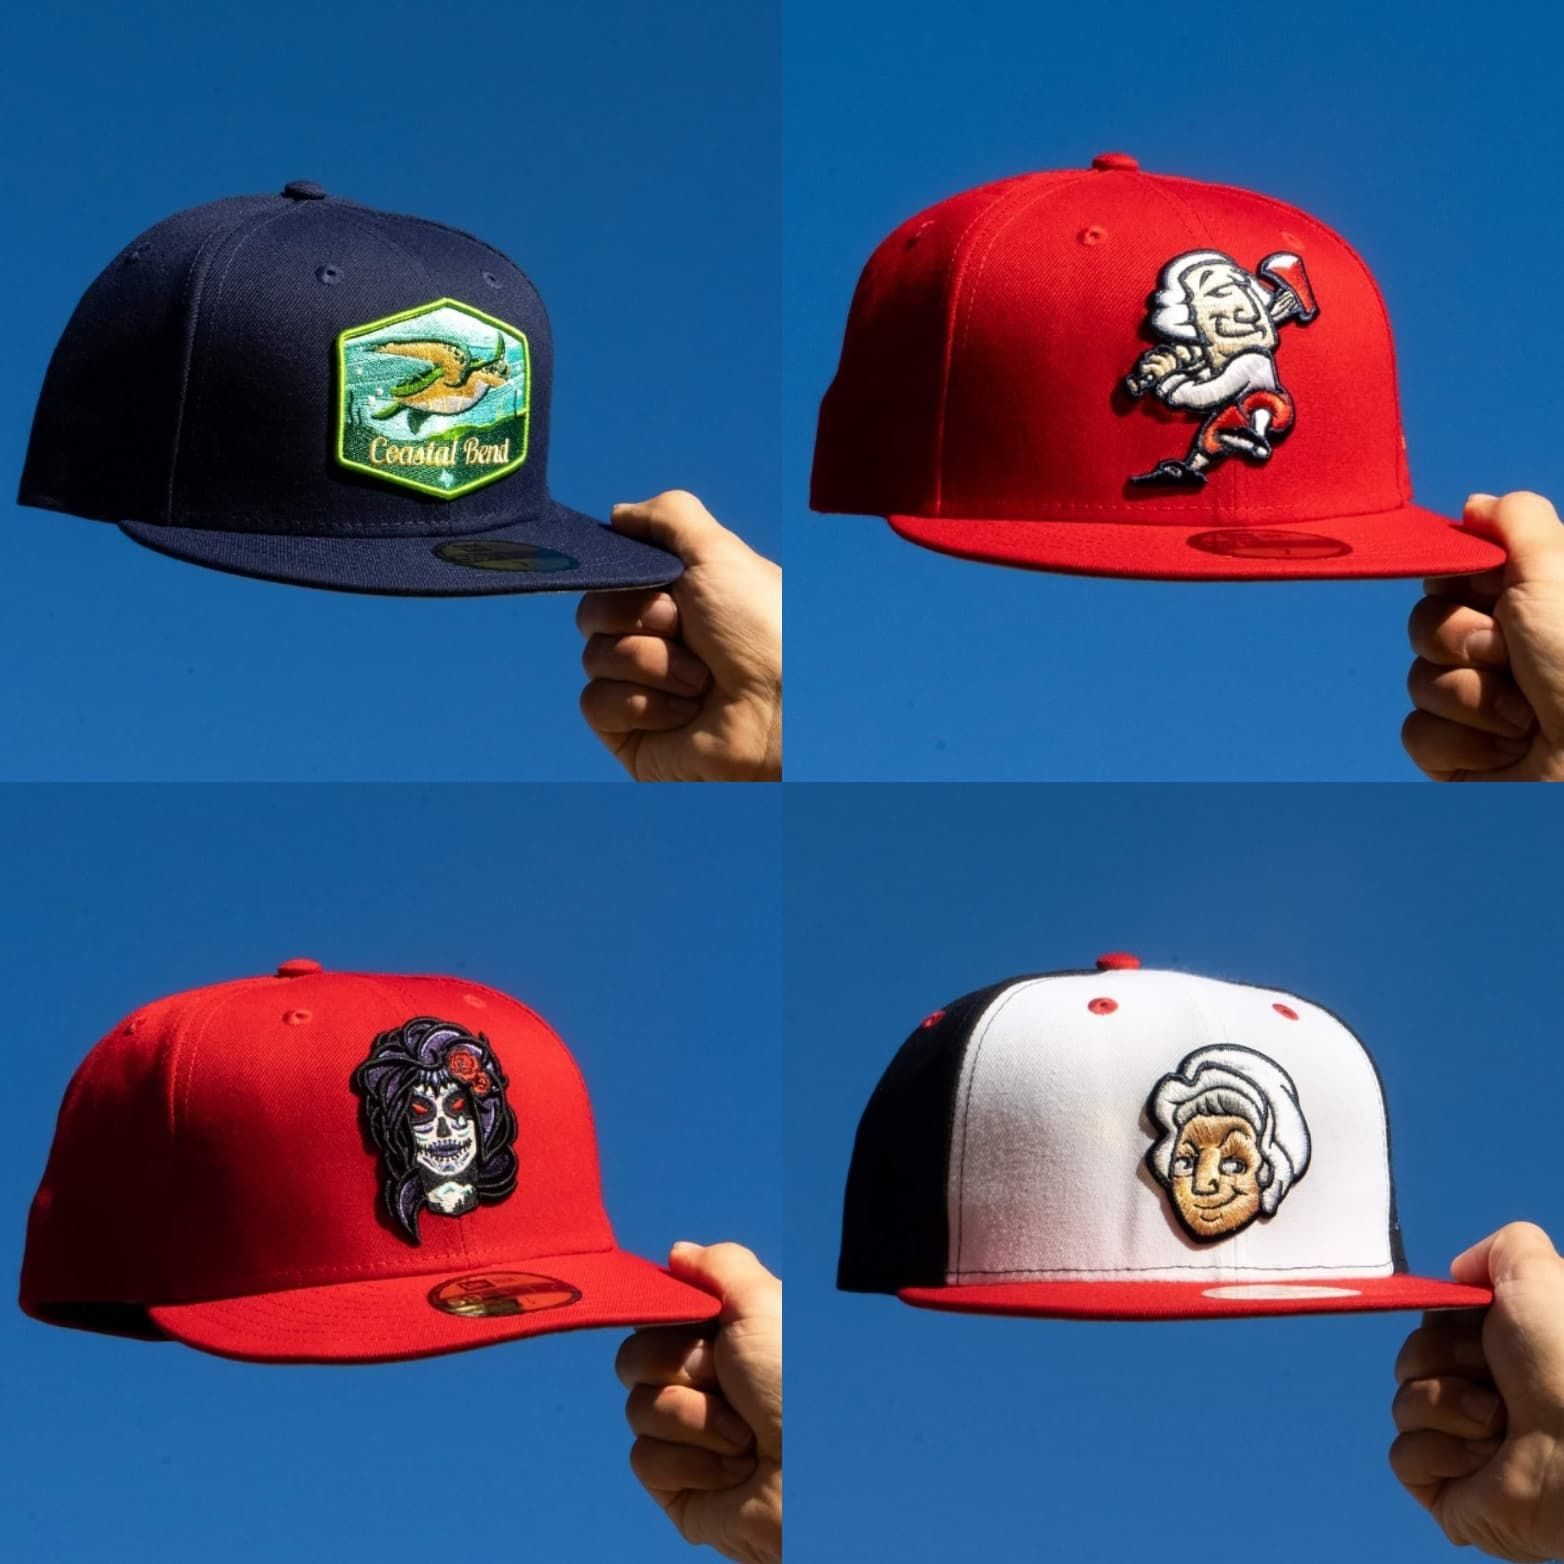 Minor League Hat Drop At Hat Club On 1 18 In 2021 League Minor Club